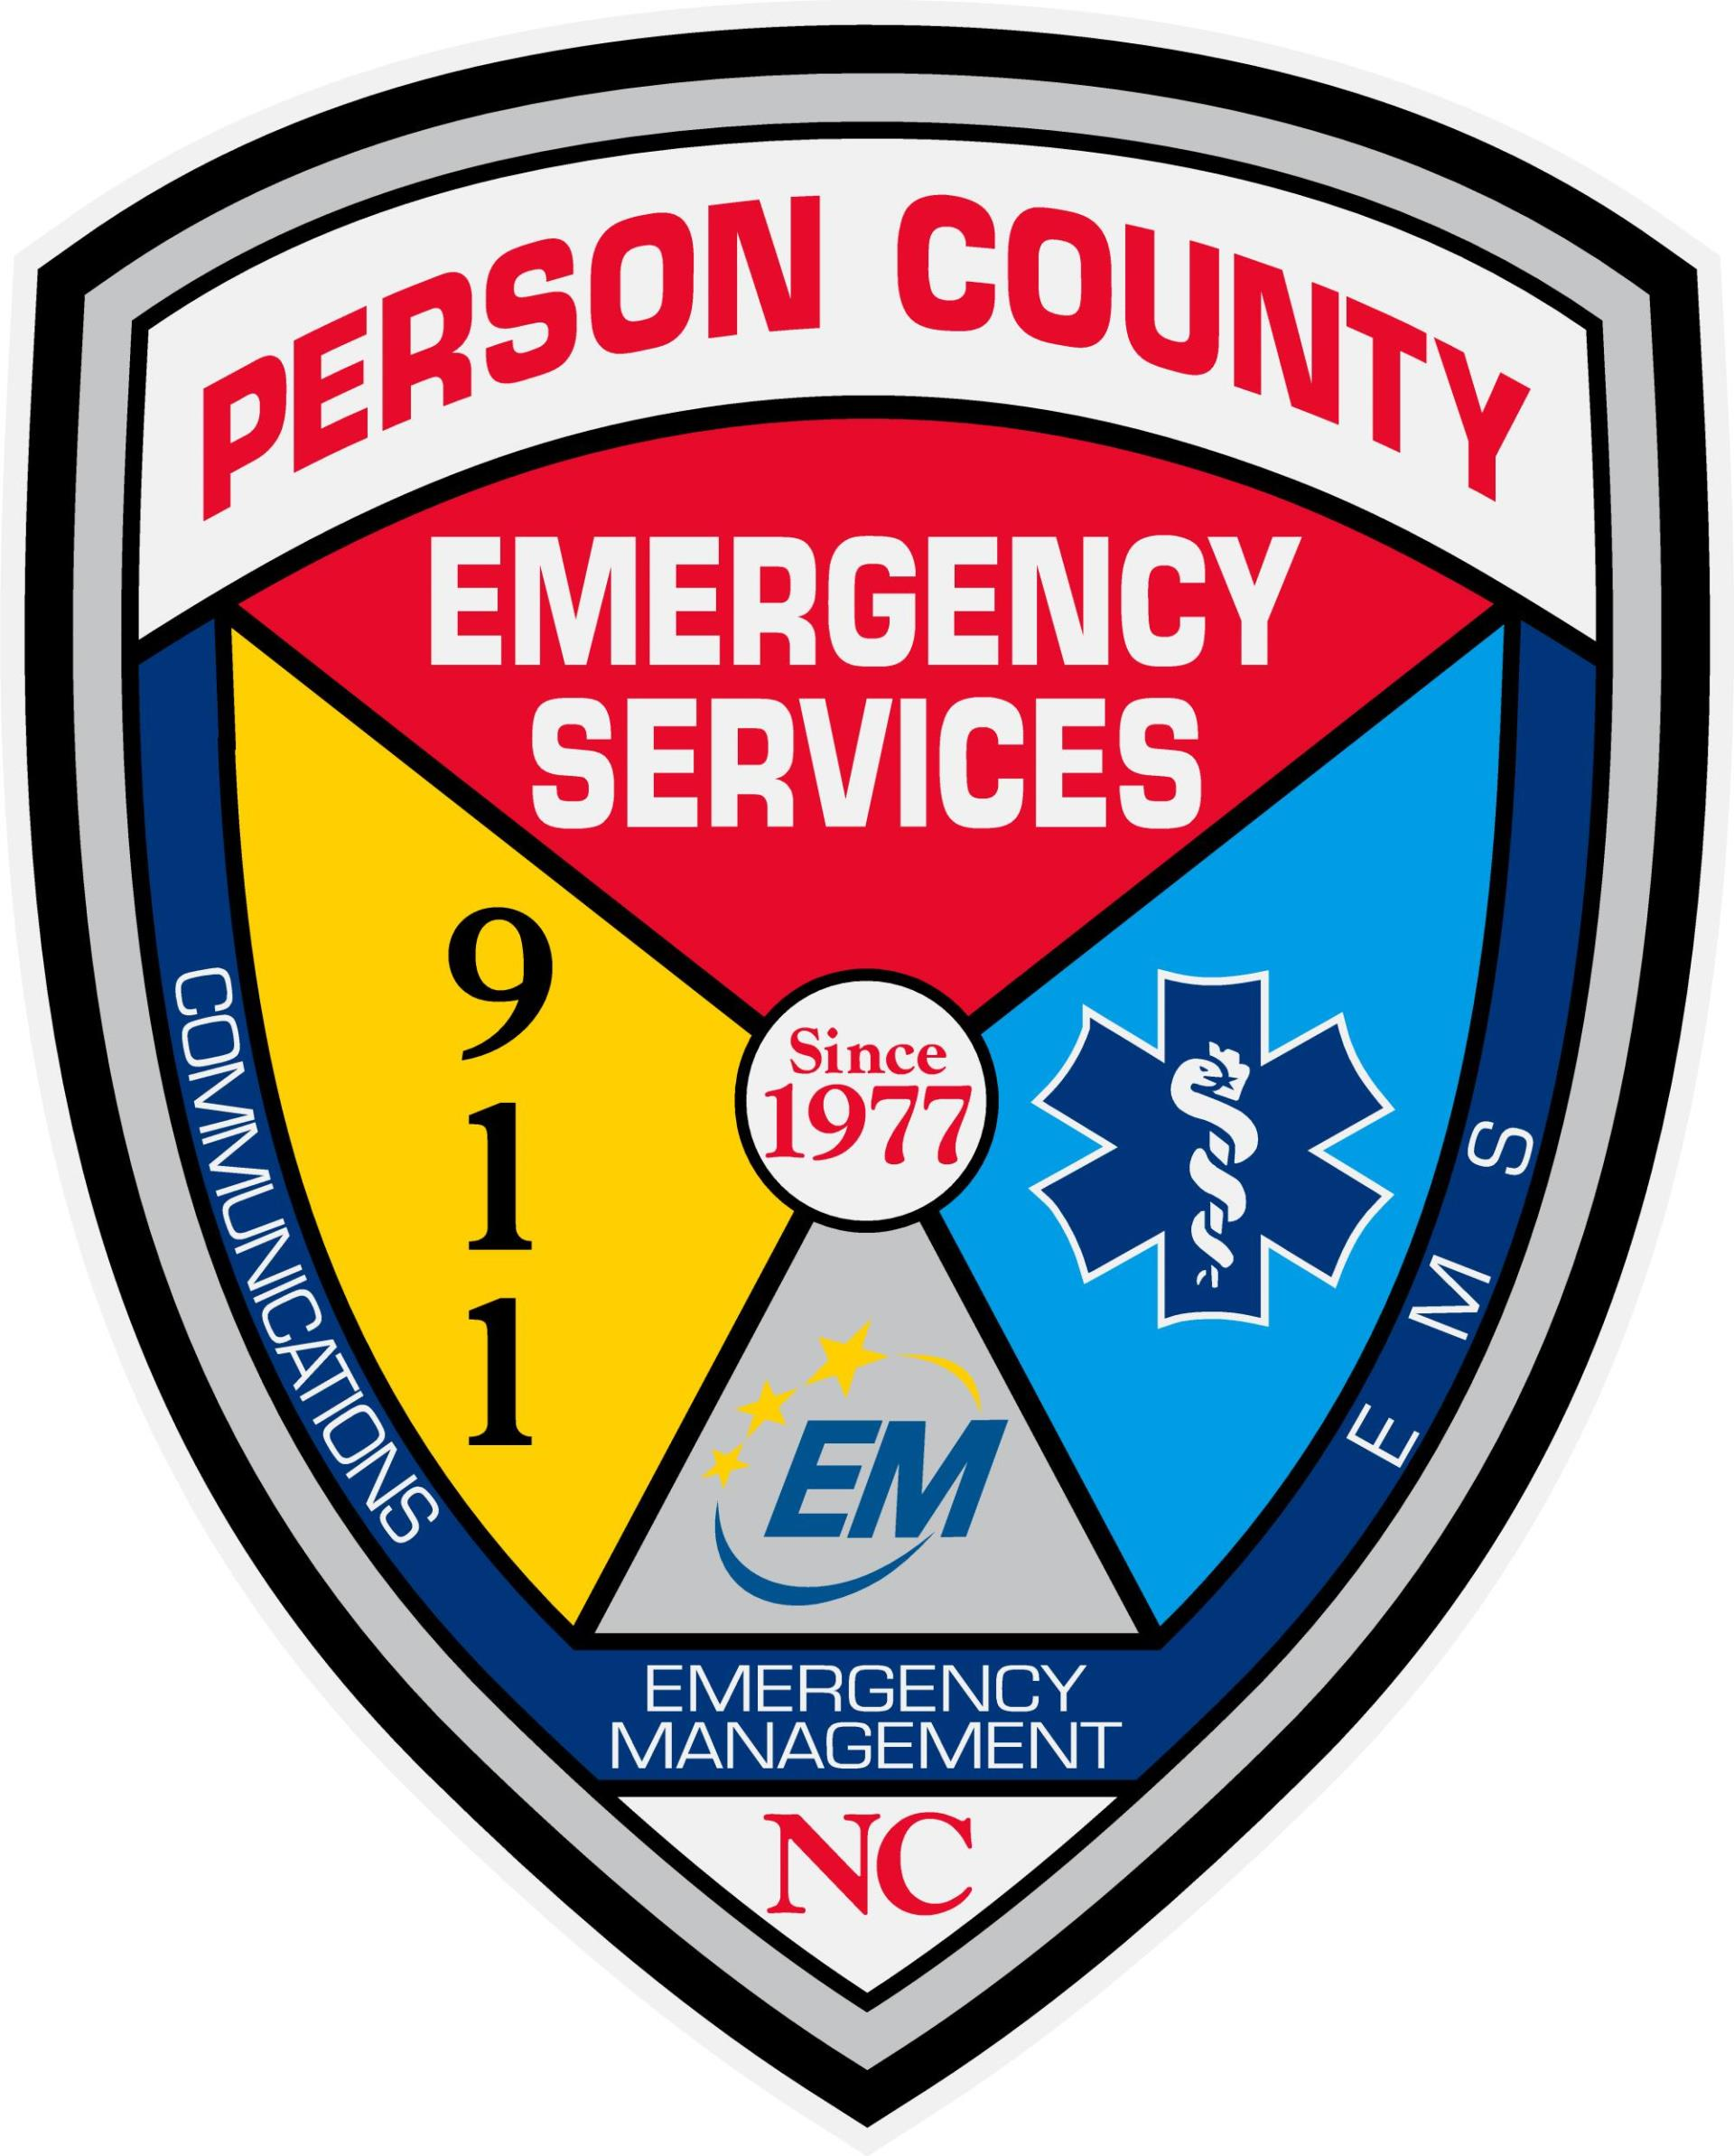 person county nc emergency services